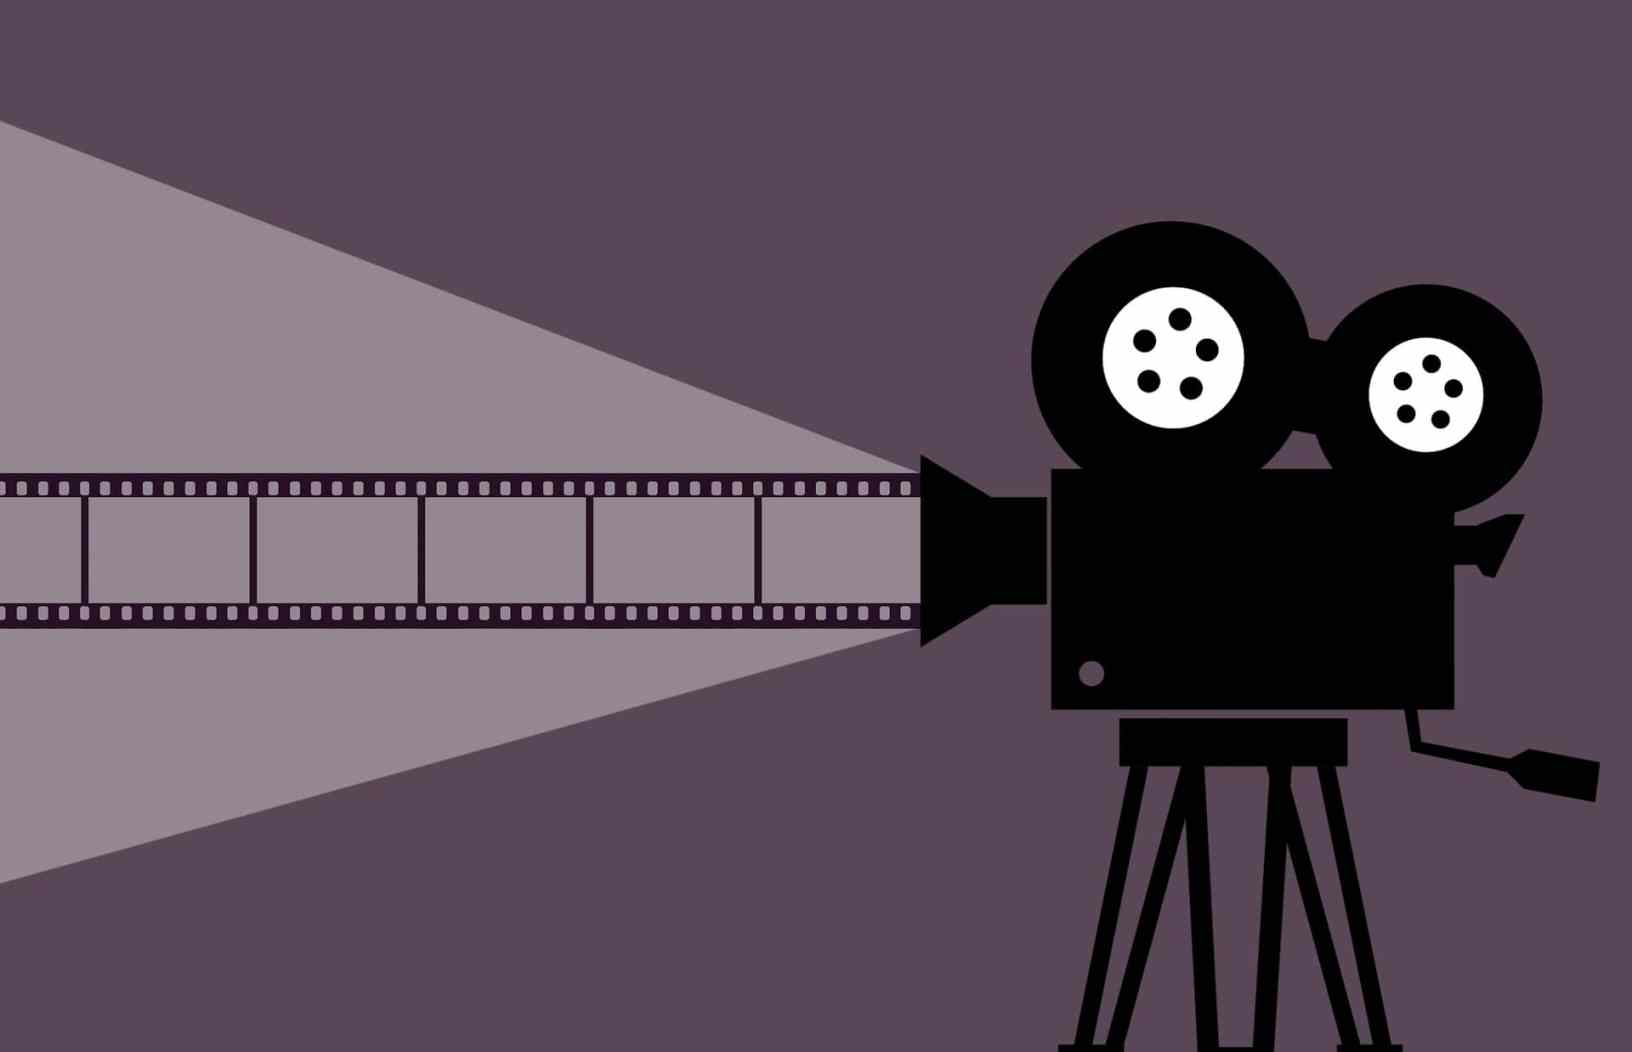 Movie or video icon